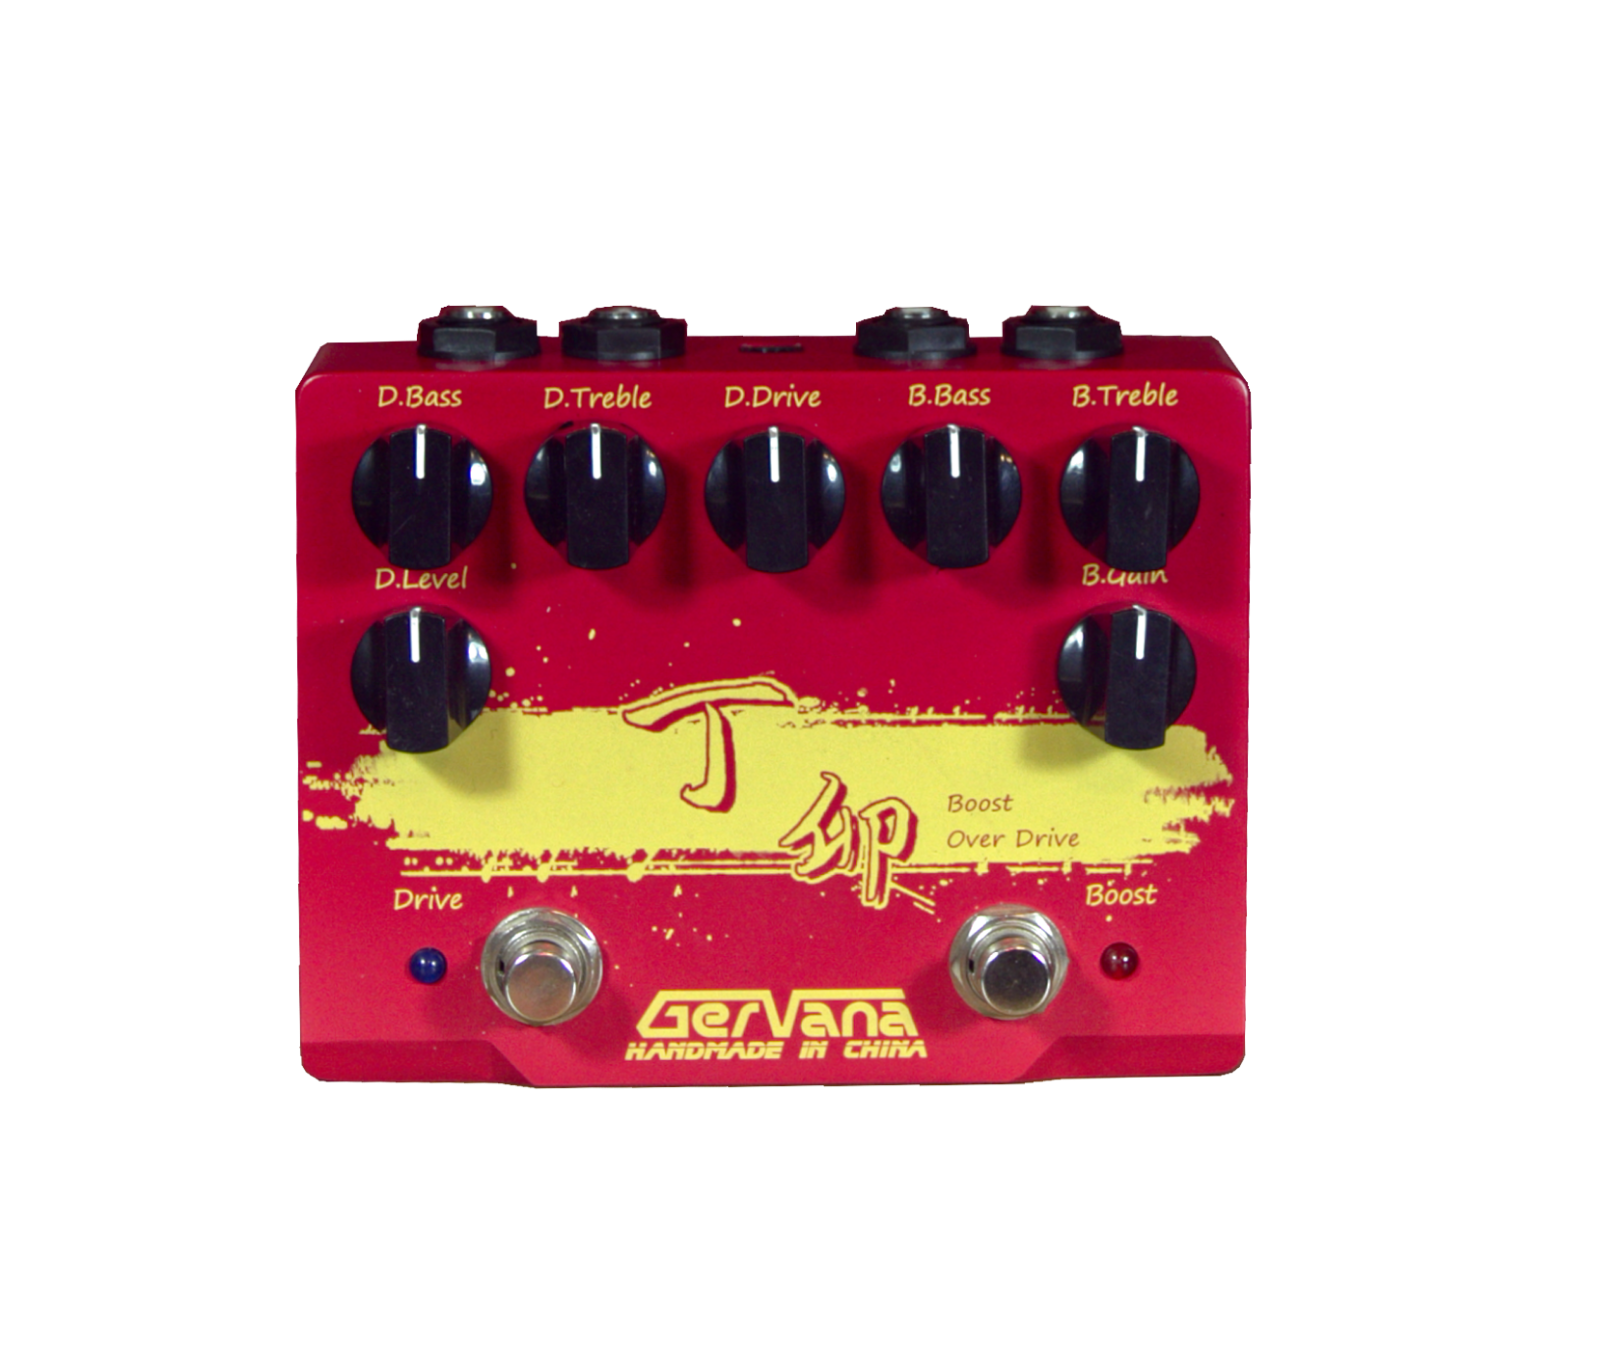 Gervana Ding Mao Hand-wirot Guitar Boost and Overdrive Dual Effect Pedal